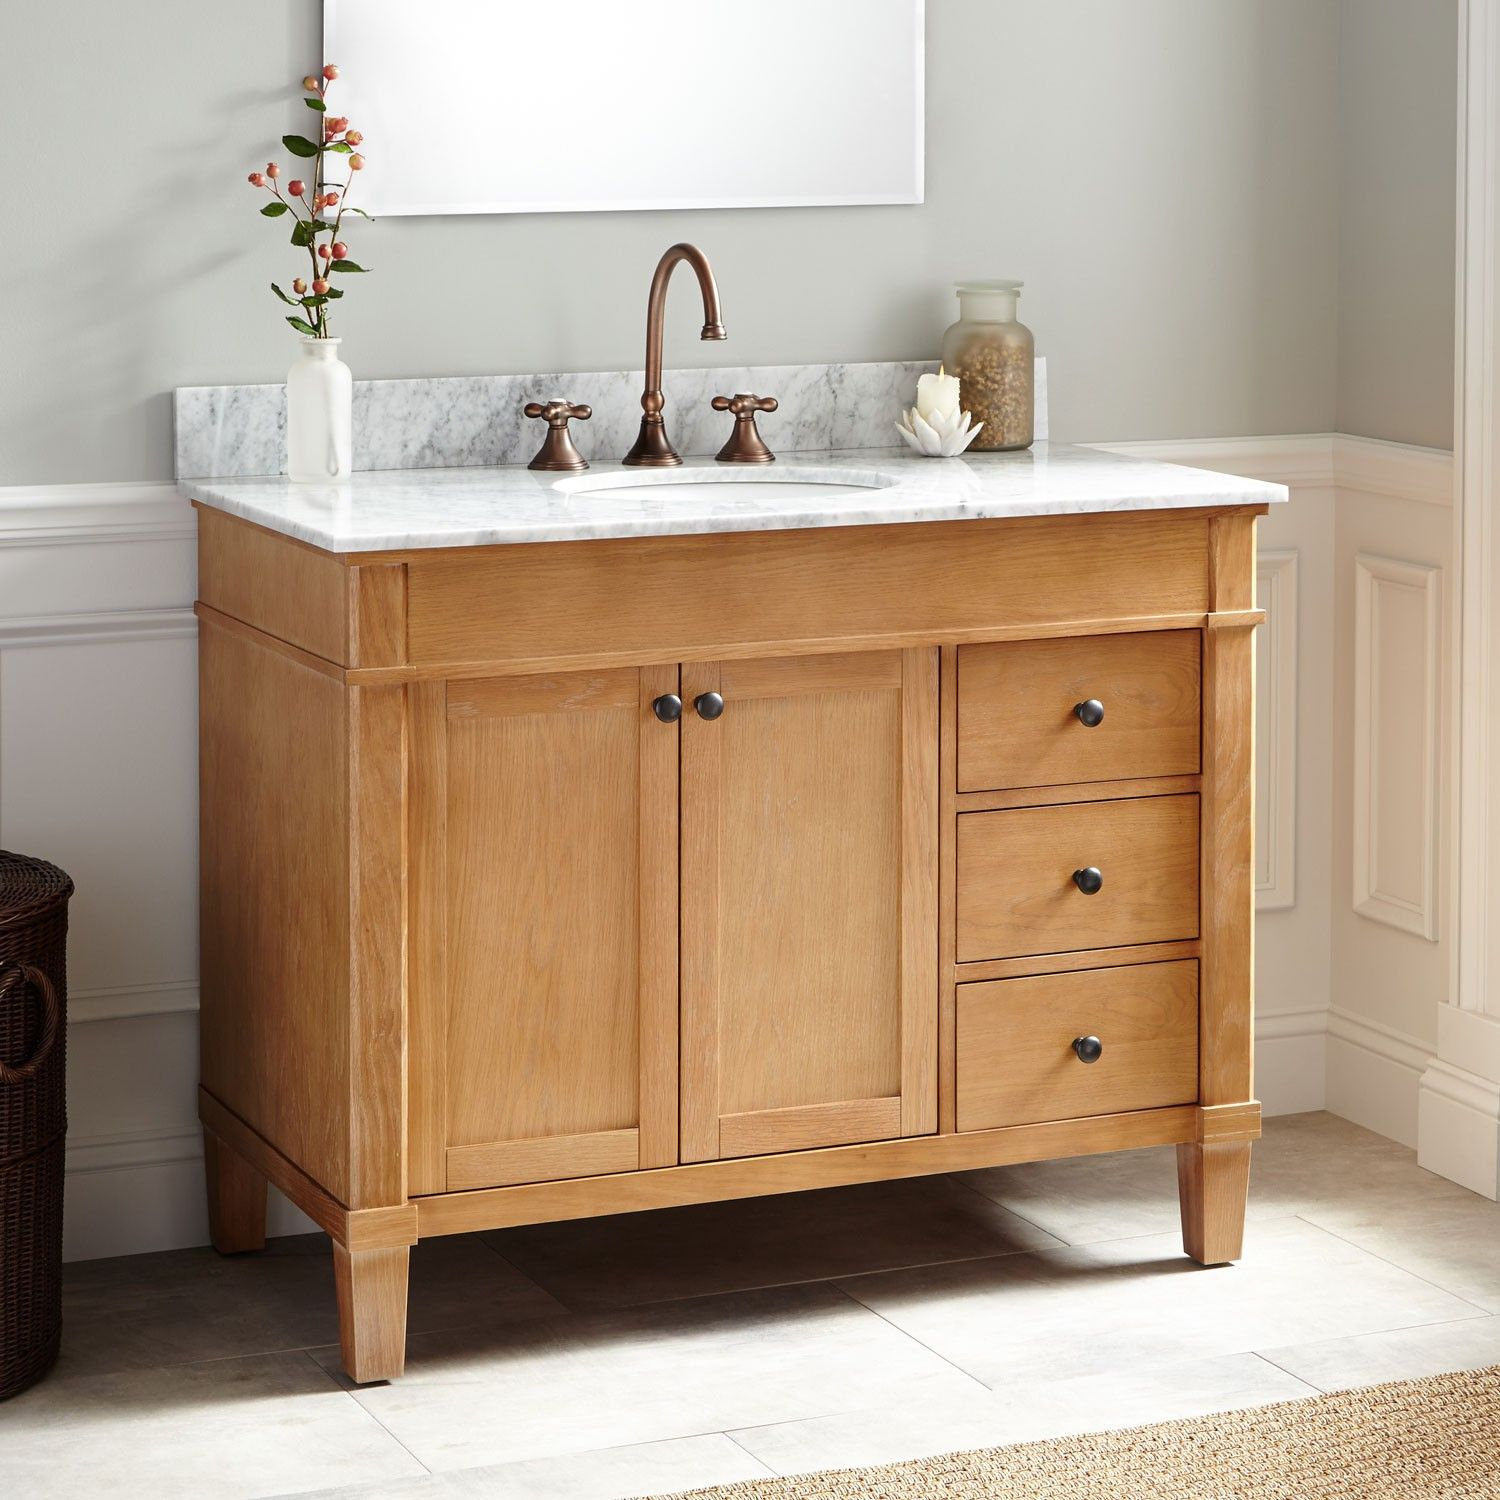 50+ Great Oak Bathroom Vanities And Cabinets